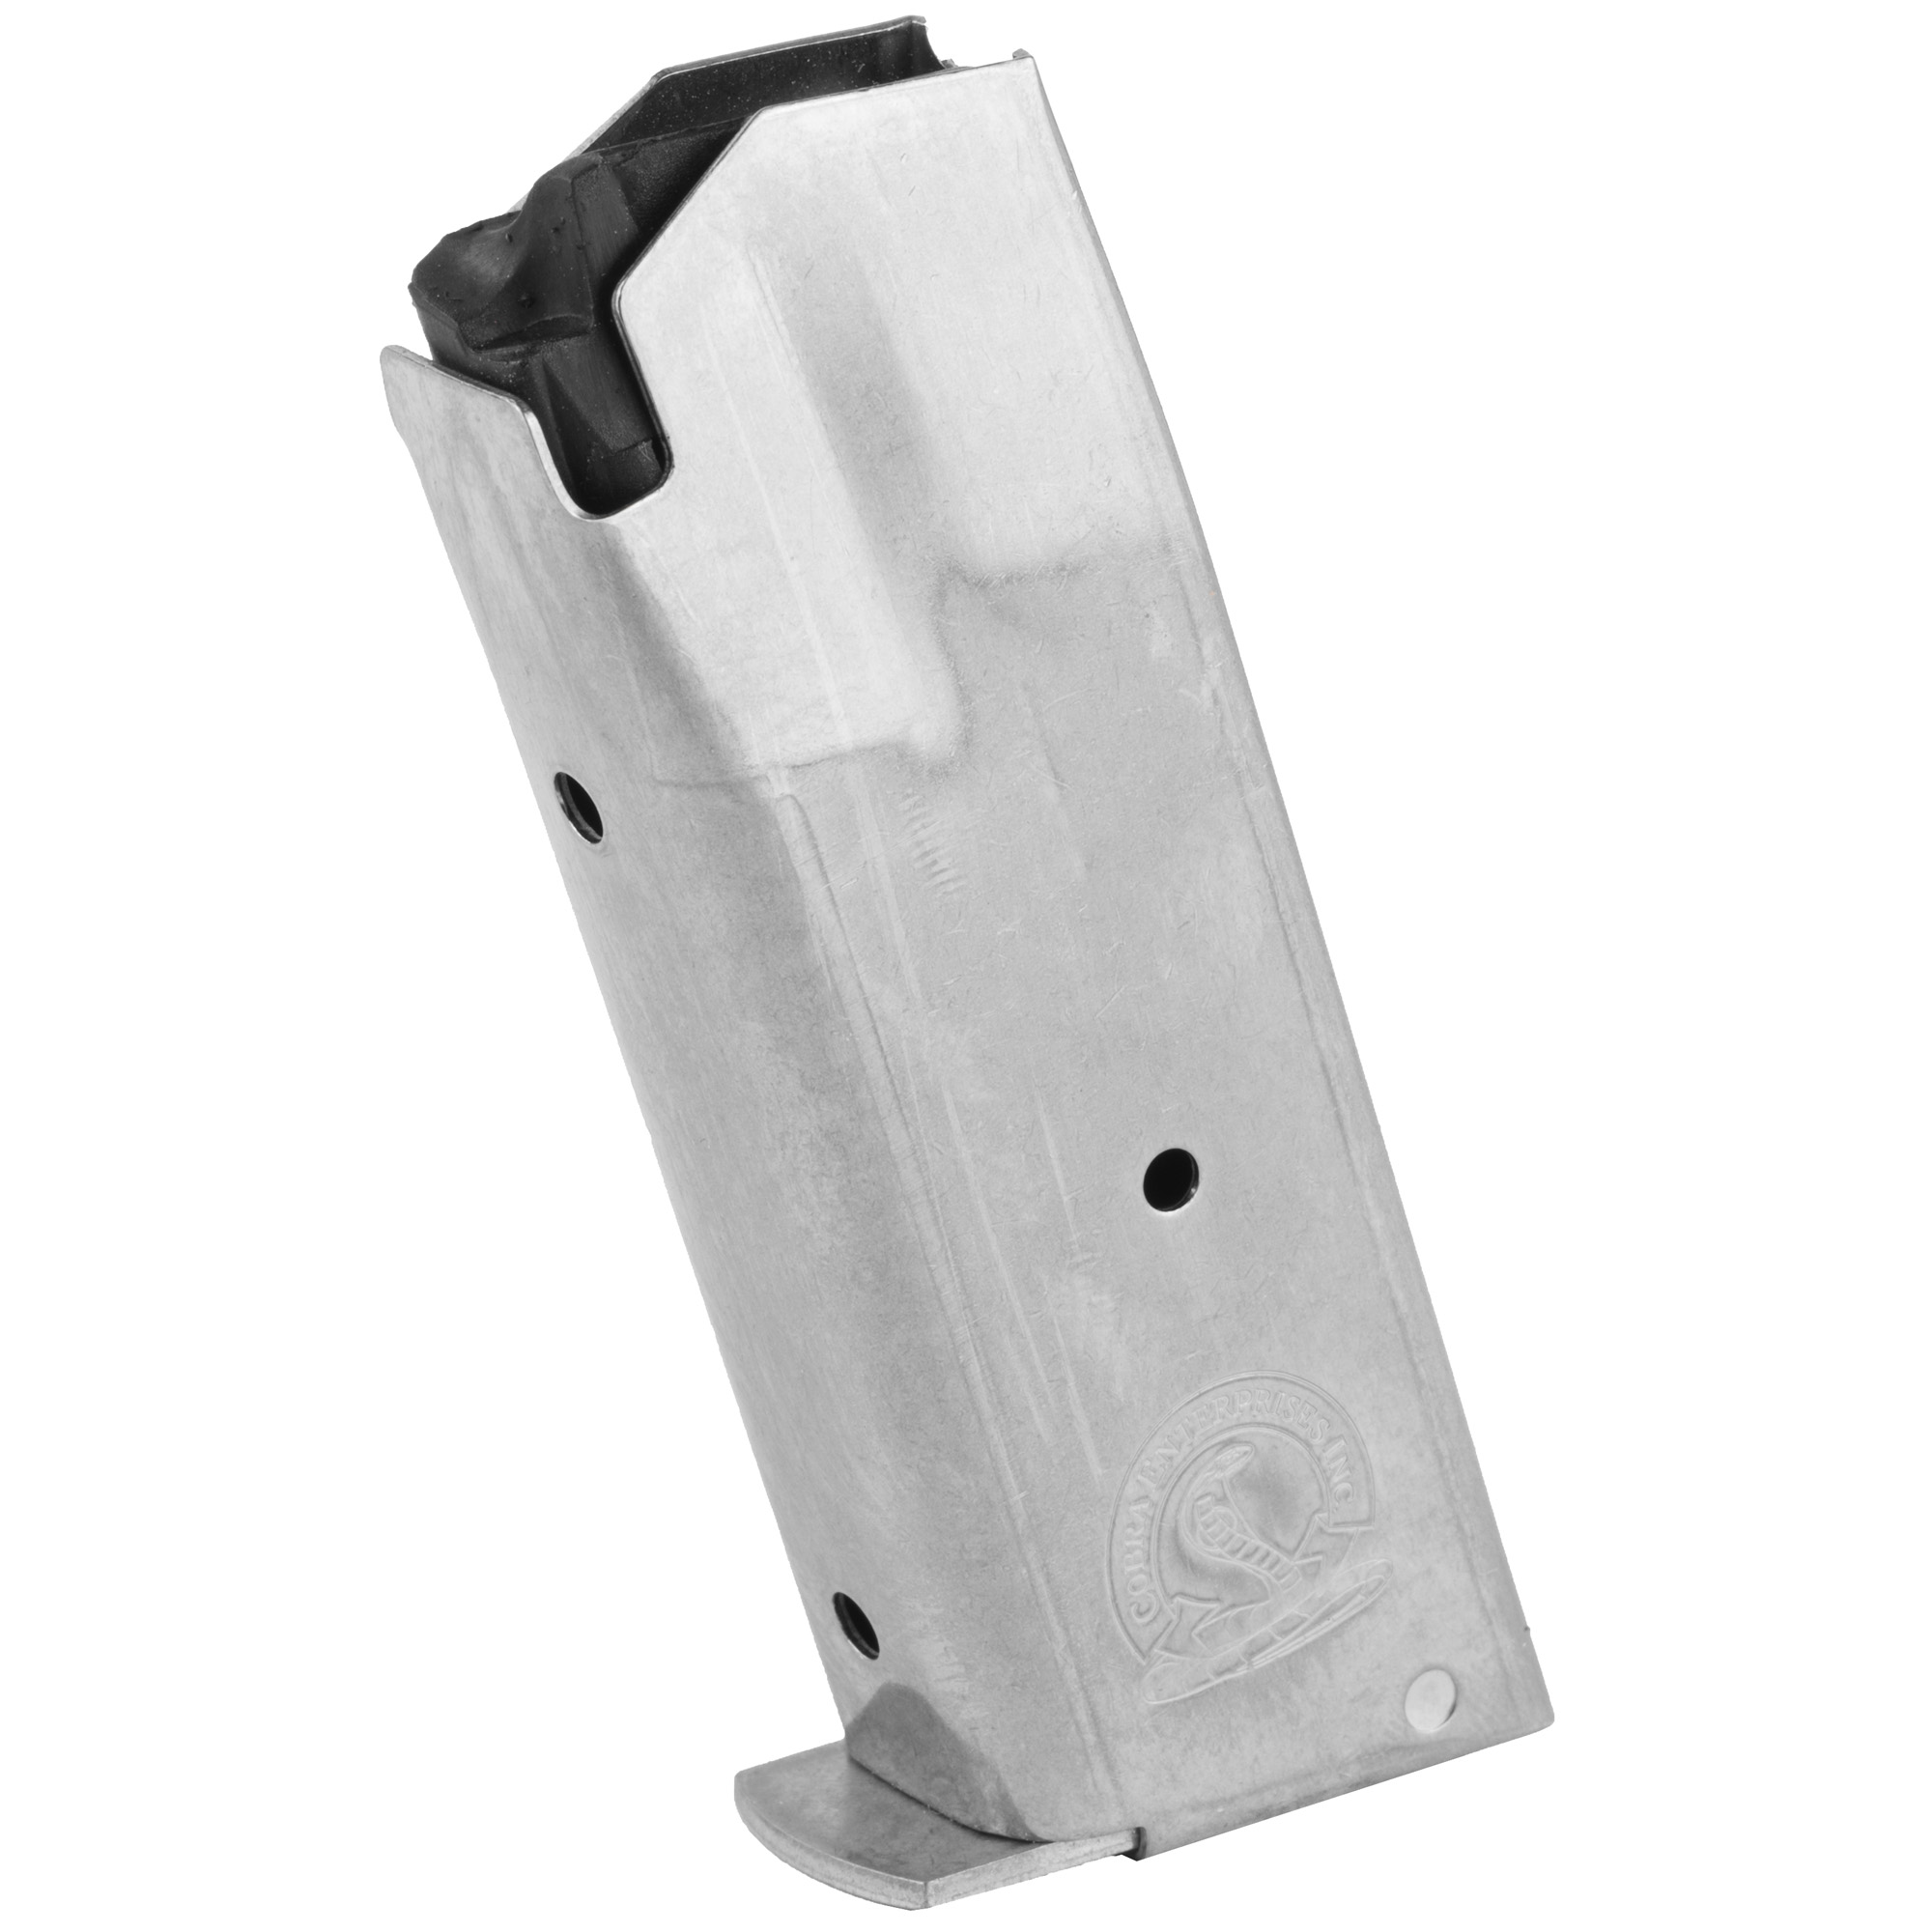 This Cobra Enterprises Magazine is a standard factory replacement magazine. It features metal construction and comes in a natural/stainless finish.